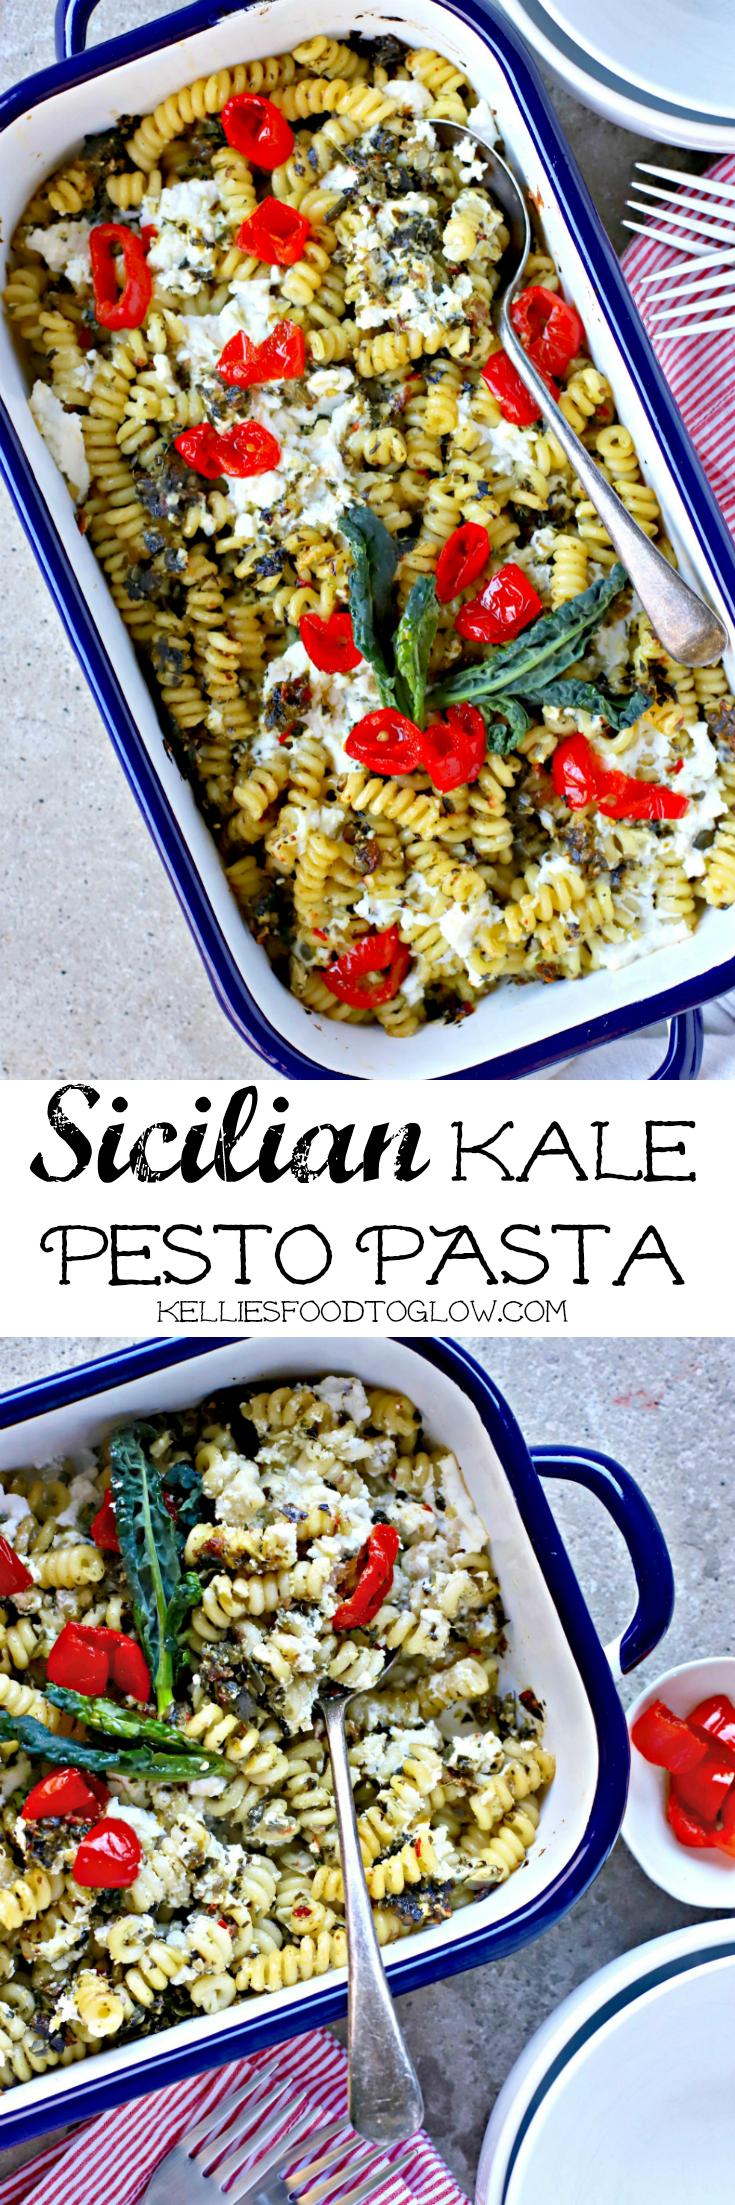 A comforting pesto pasta supper dish with the vibrant Sicilian flavours of lemon, garlic, capers and sultanas, chopped with blanched kale and stirred into your favourite pasta shapes with soft ricotta cheese.